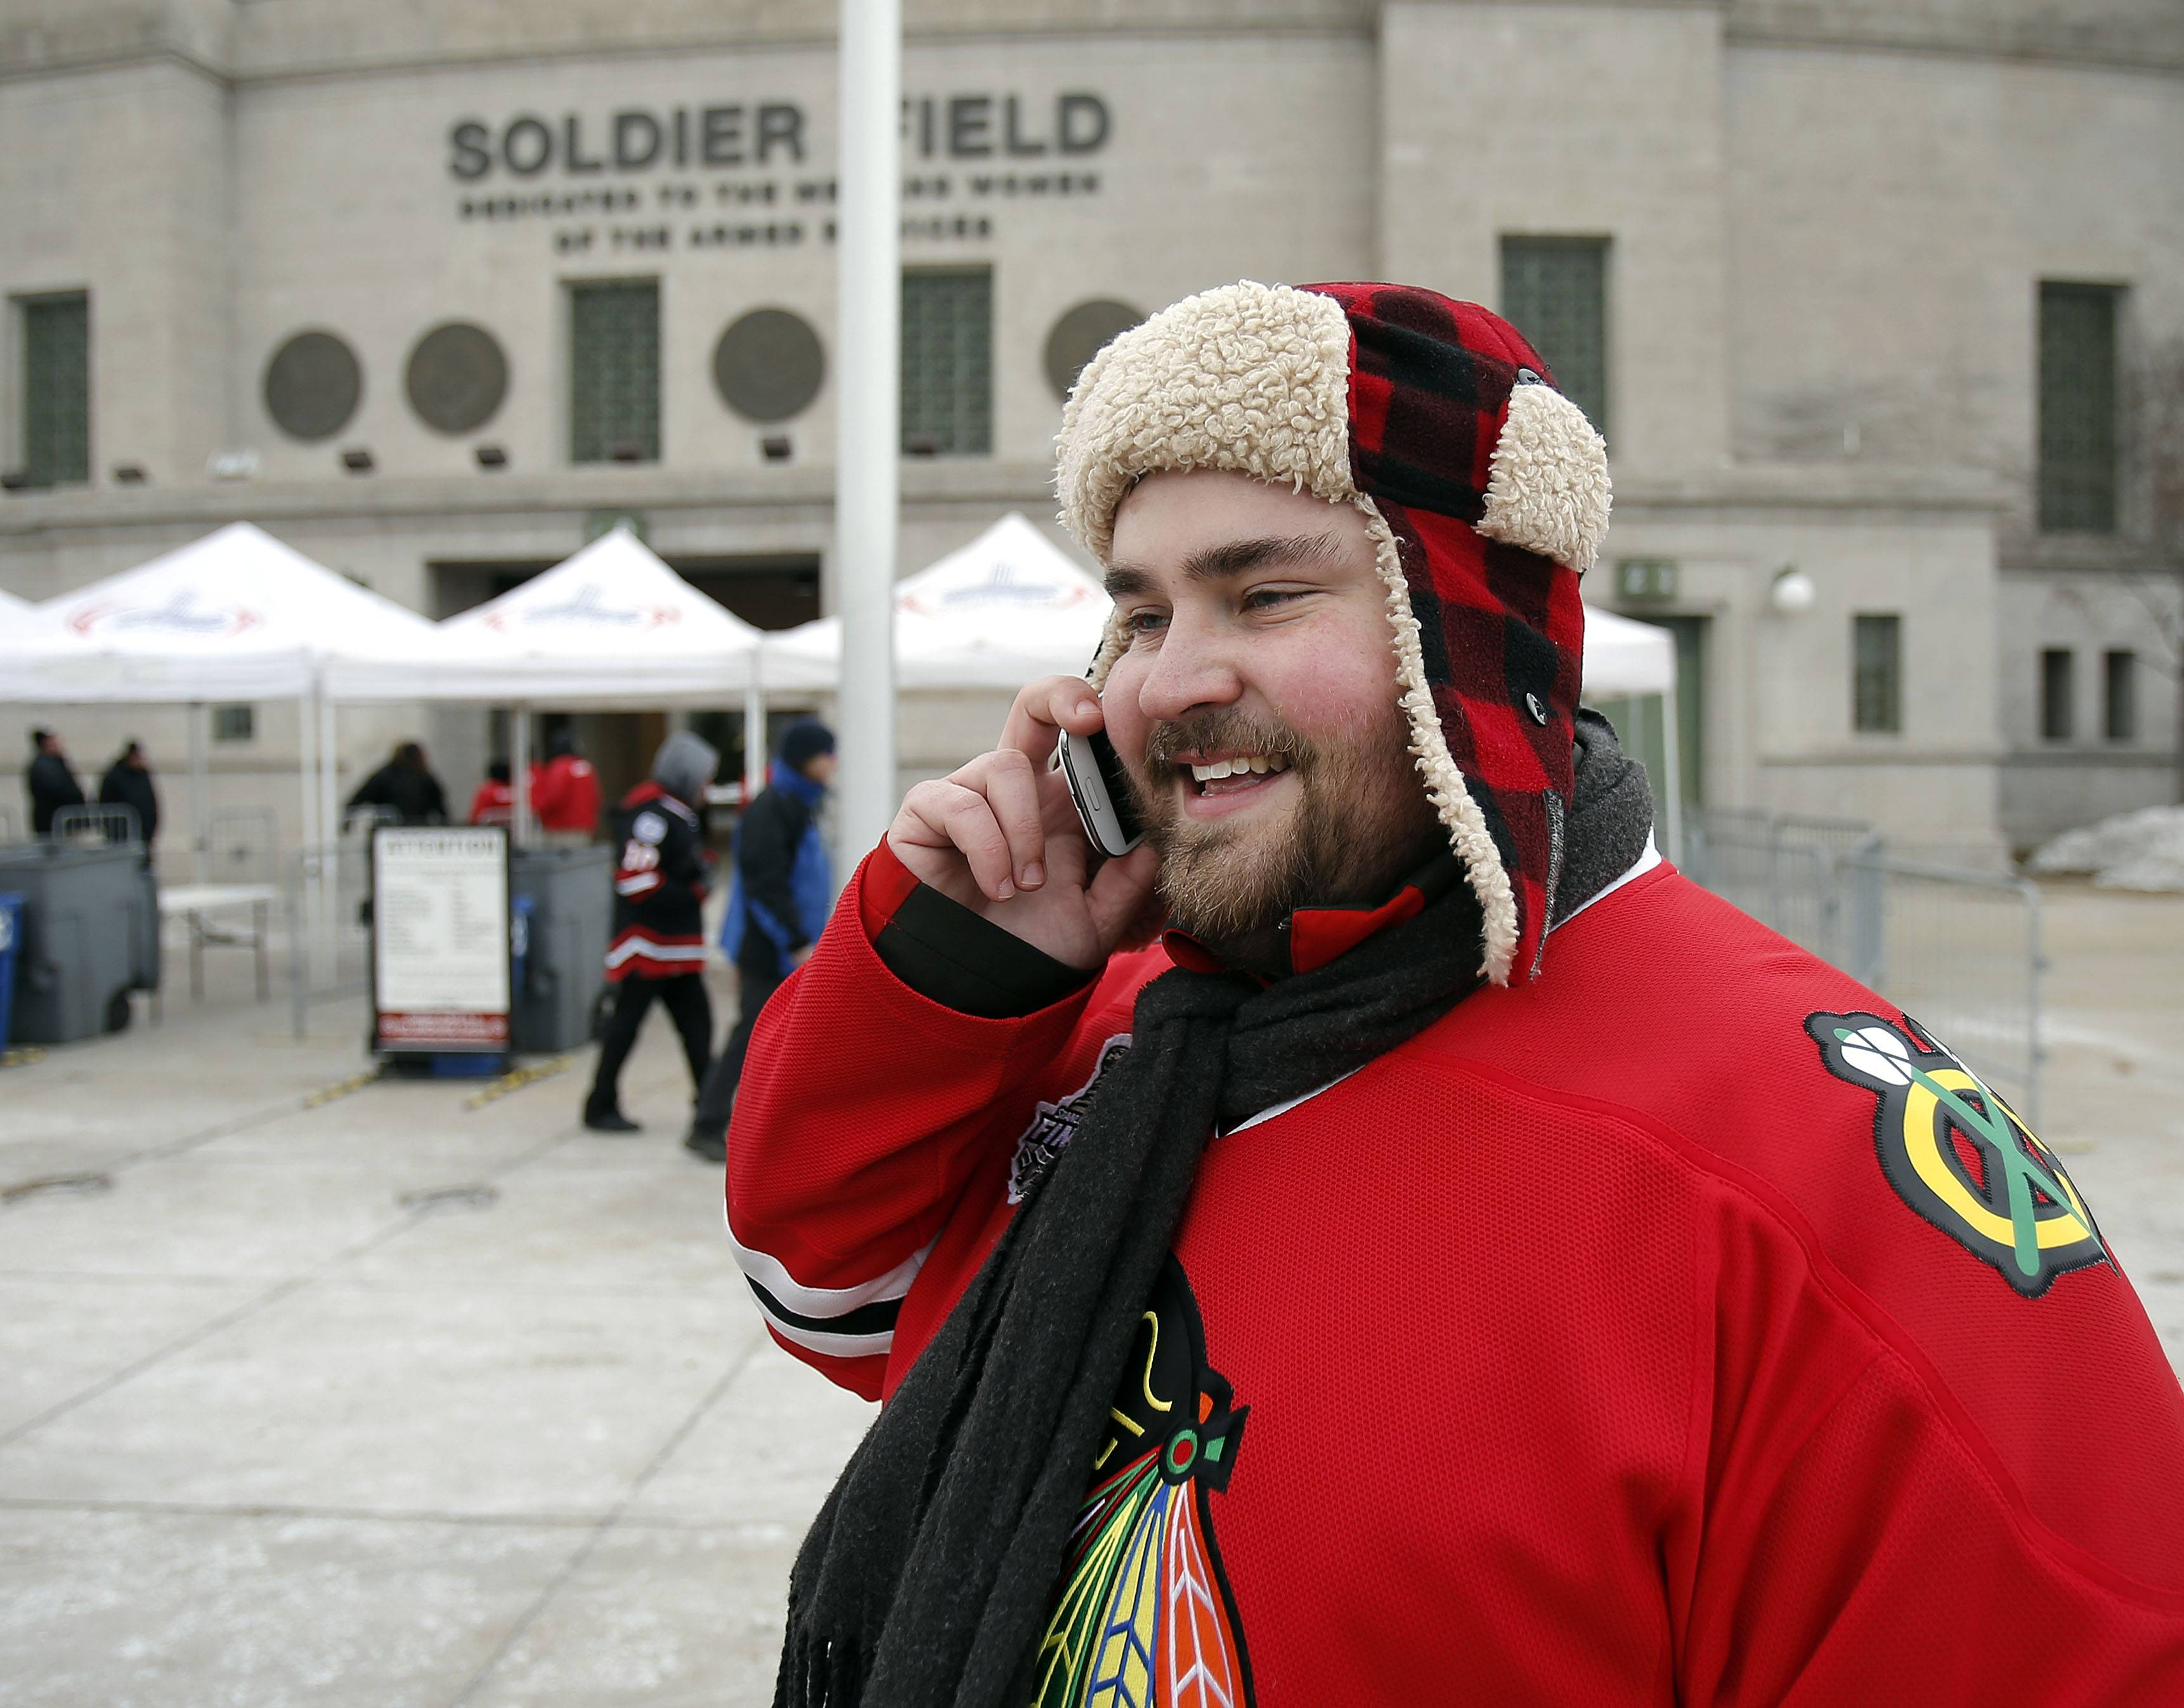 Erik Ambrus of Mount Prospect talks on the phone Soldier Field prior to the Blackhawks vs Penguins NHL Stadium Series Saturday.